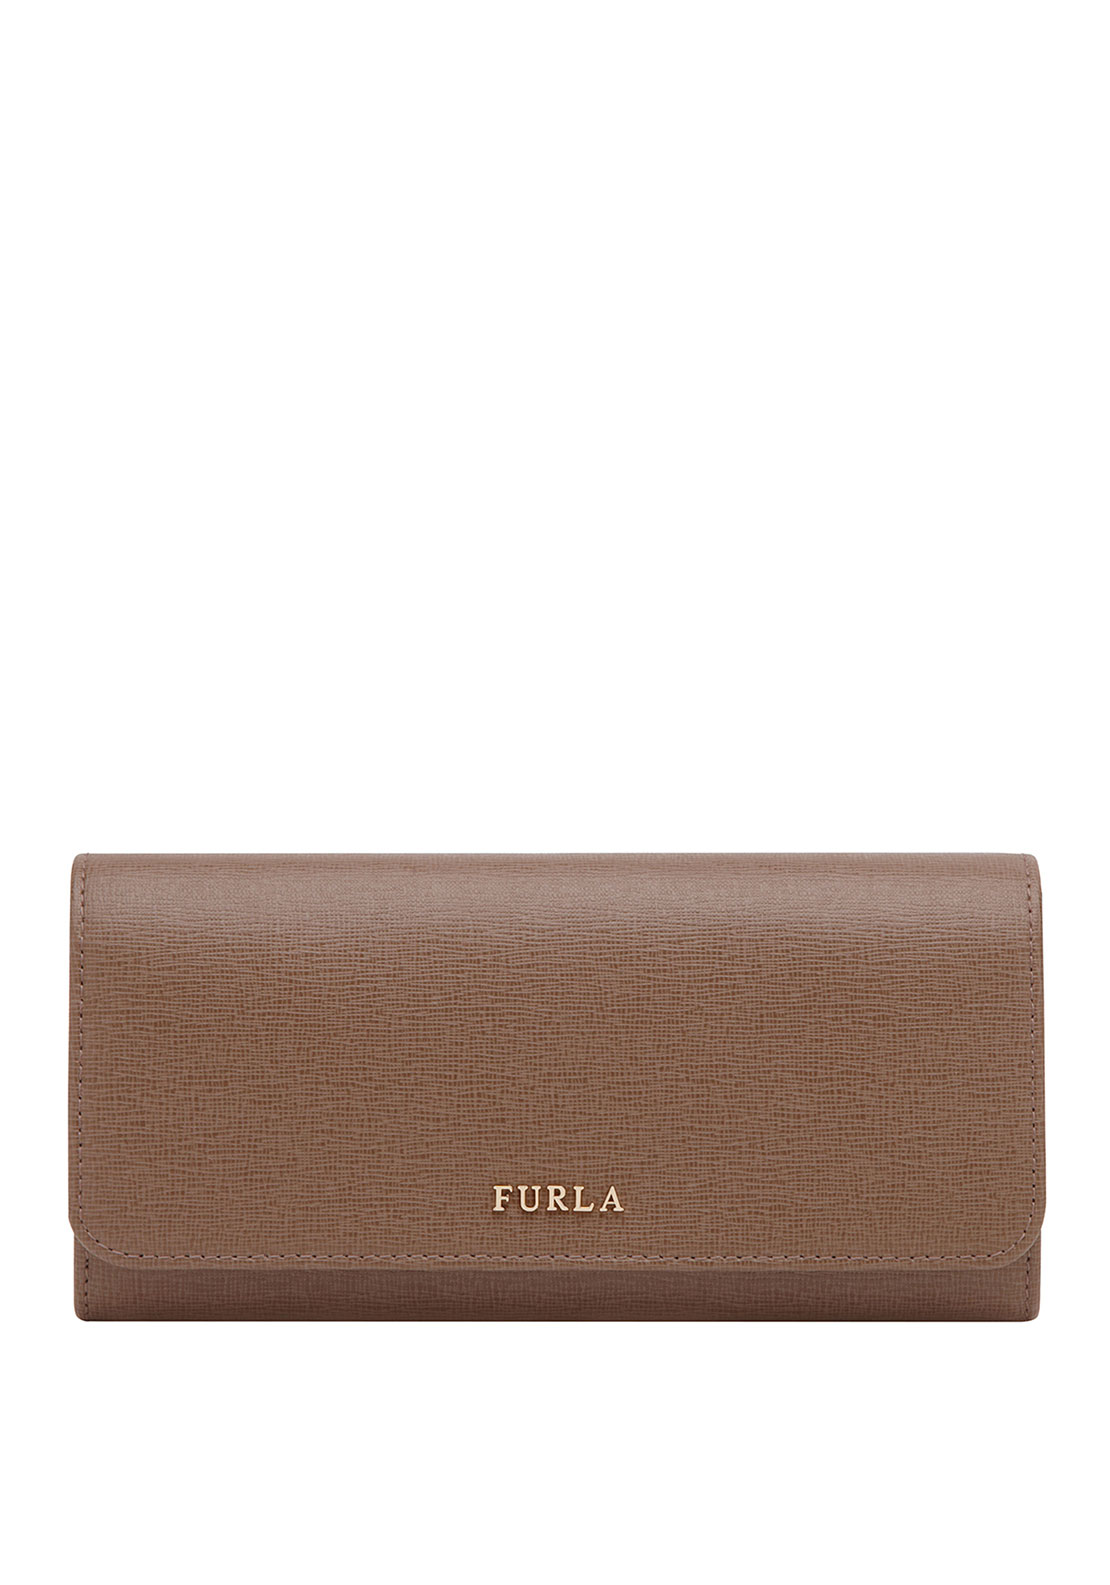 Furla Babylon Leather Drop Down Purse, Brown